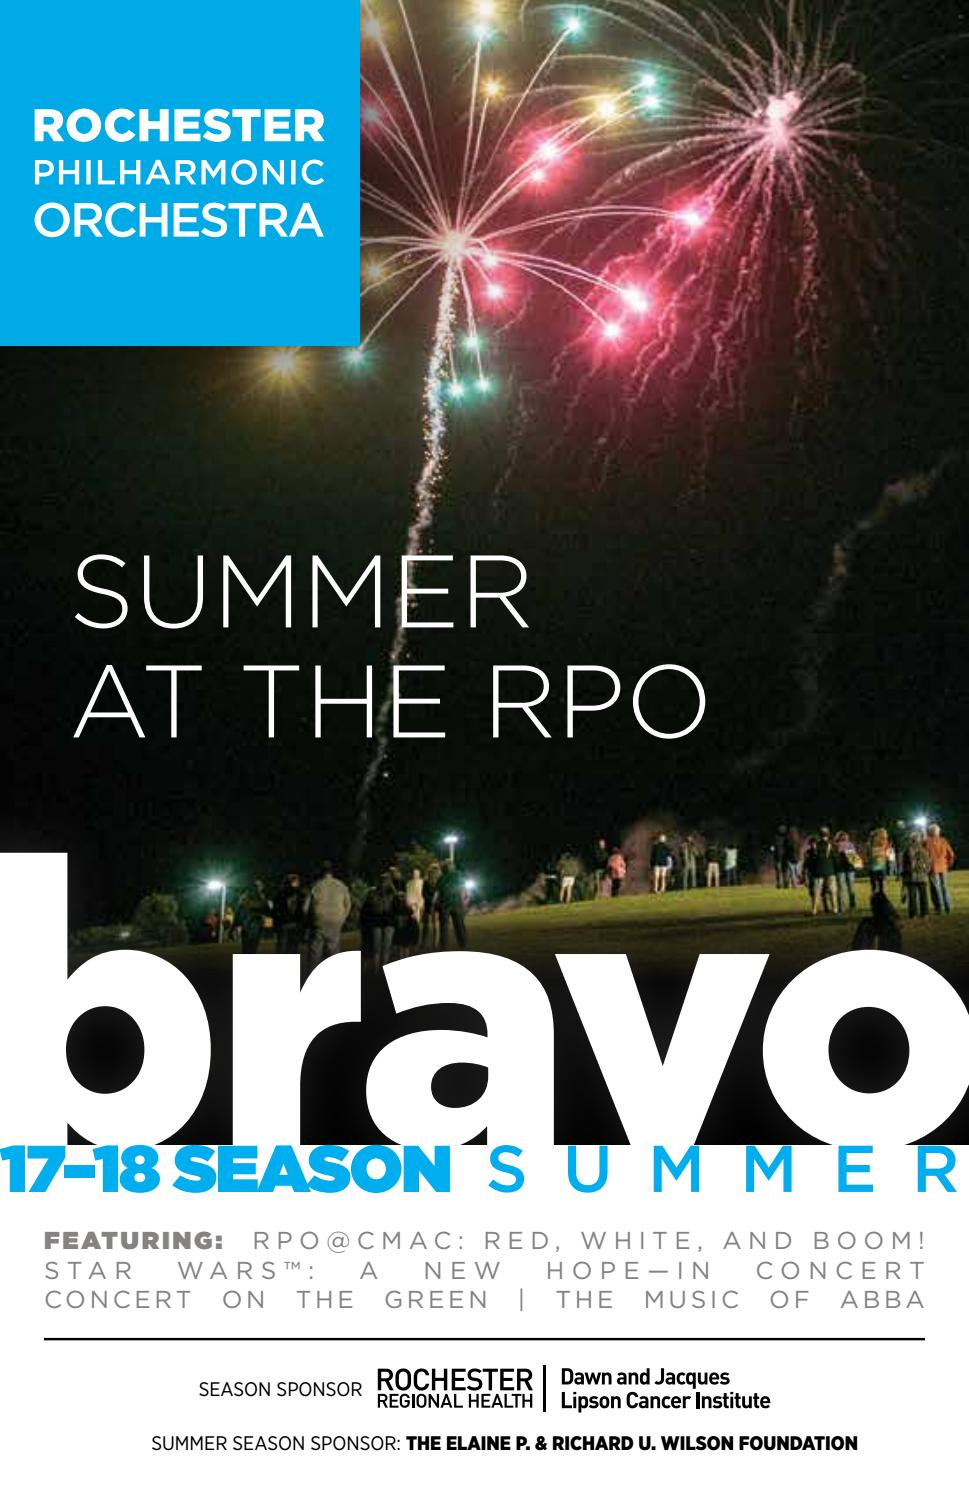 17 18 season bravo 10 (summer) by rochester philharmonic orchestra17 18 season bravo 10 (summer) by rochester philharmonic orchestra issuu